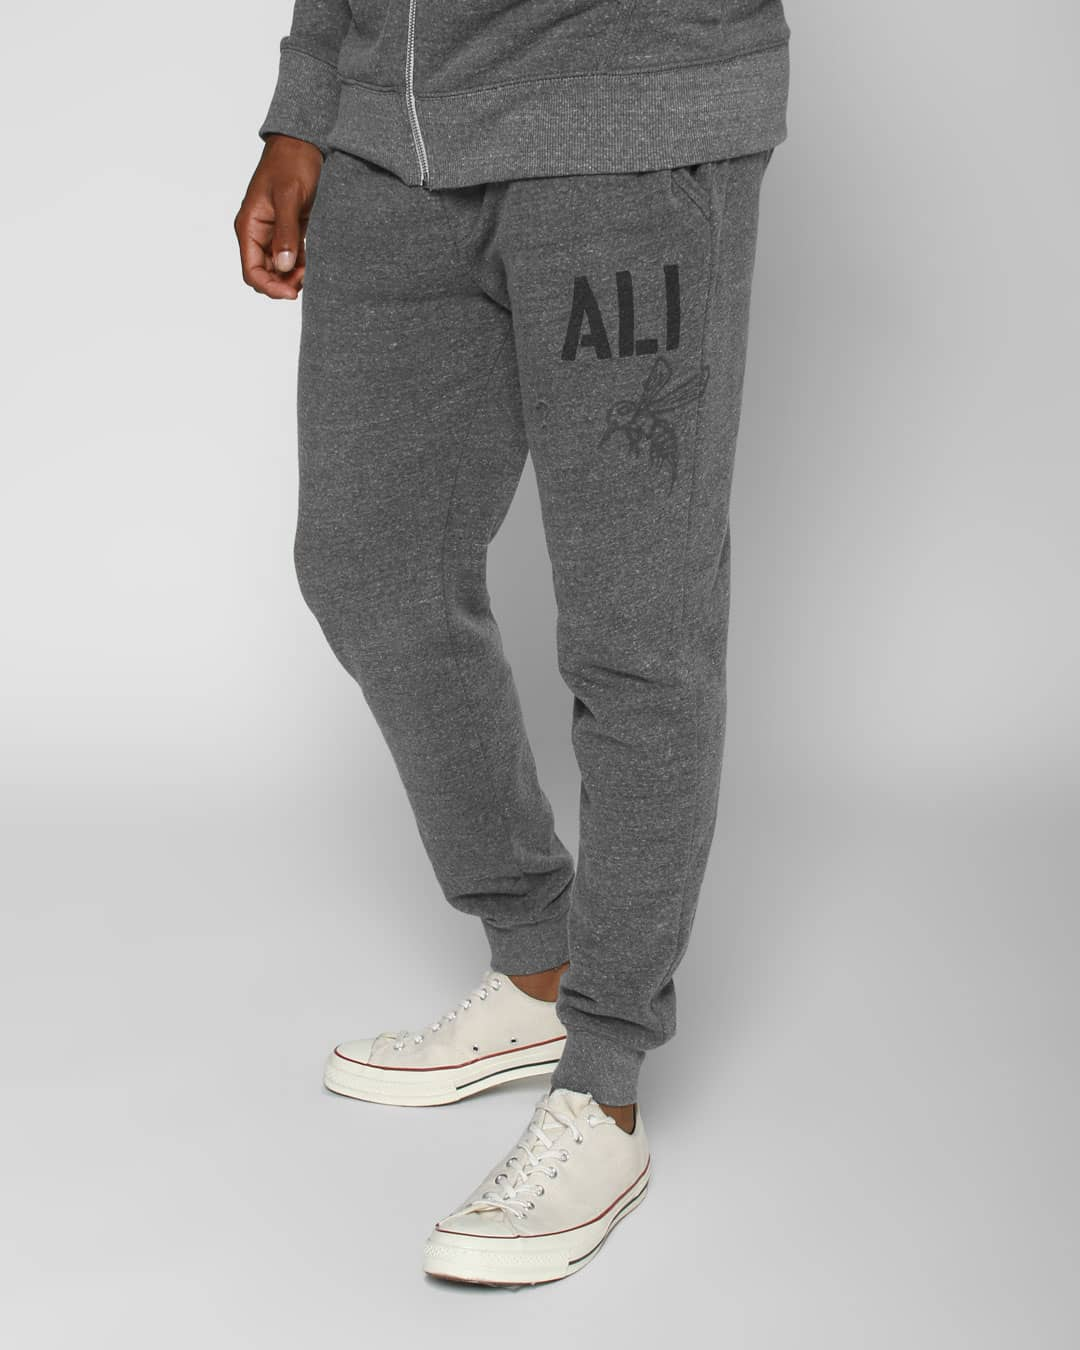 Ali Stinger Sweatpants - Roots of Inc dba Roots of Fight